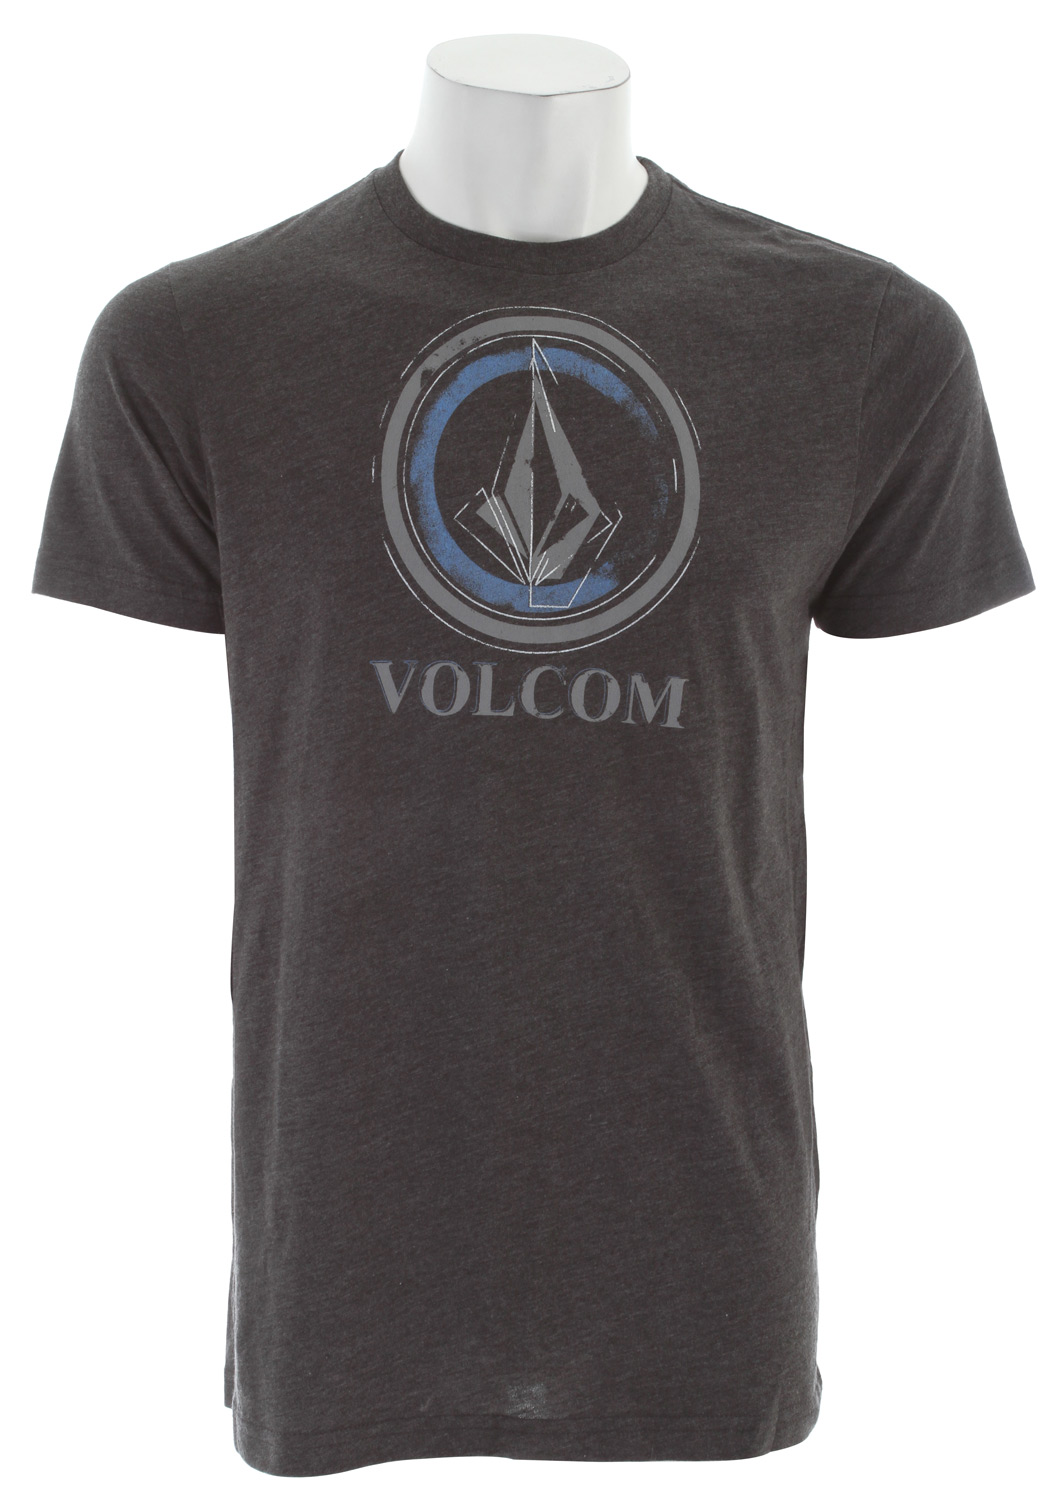 Surf Key Features of The Volcom Circle Stain T-Shirt: Regular Fit Crew Neck Short Sleeve Basic screenprint Modern fit 50% cotton/50% polyester - $17.95